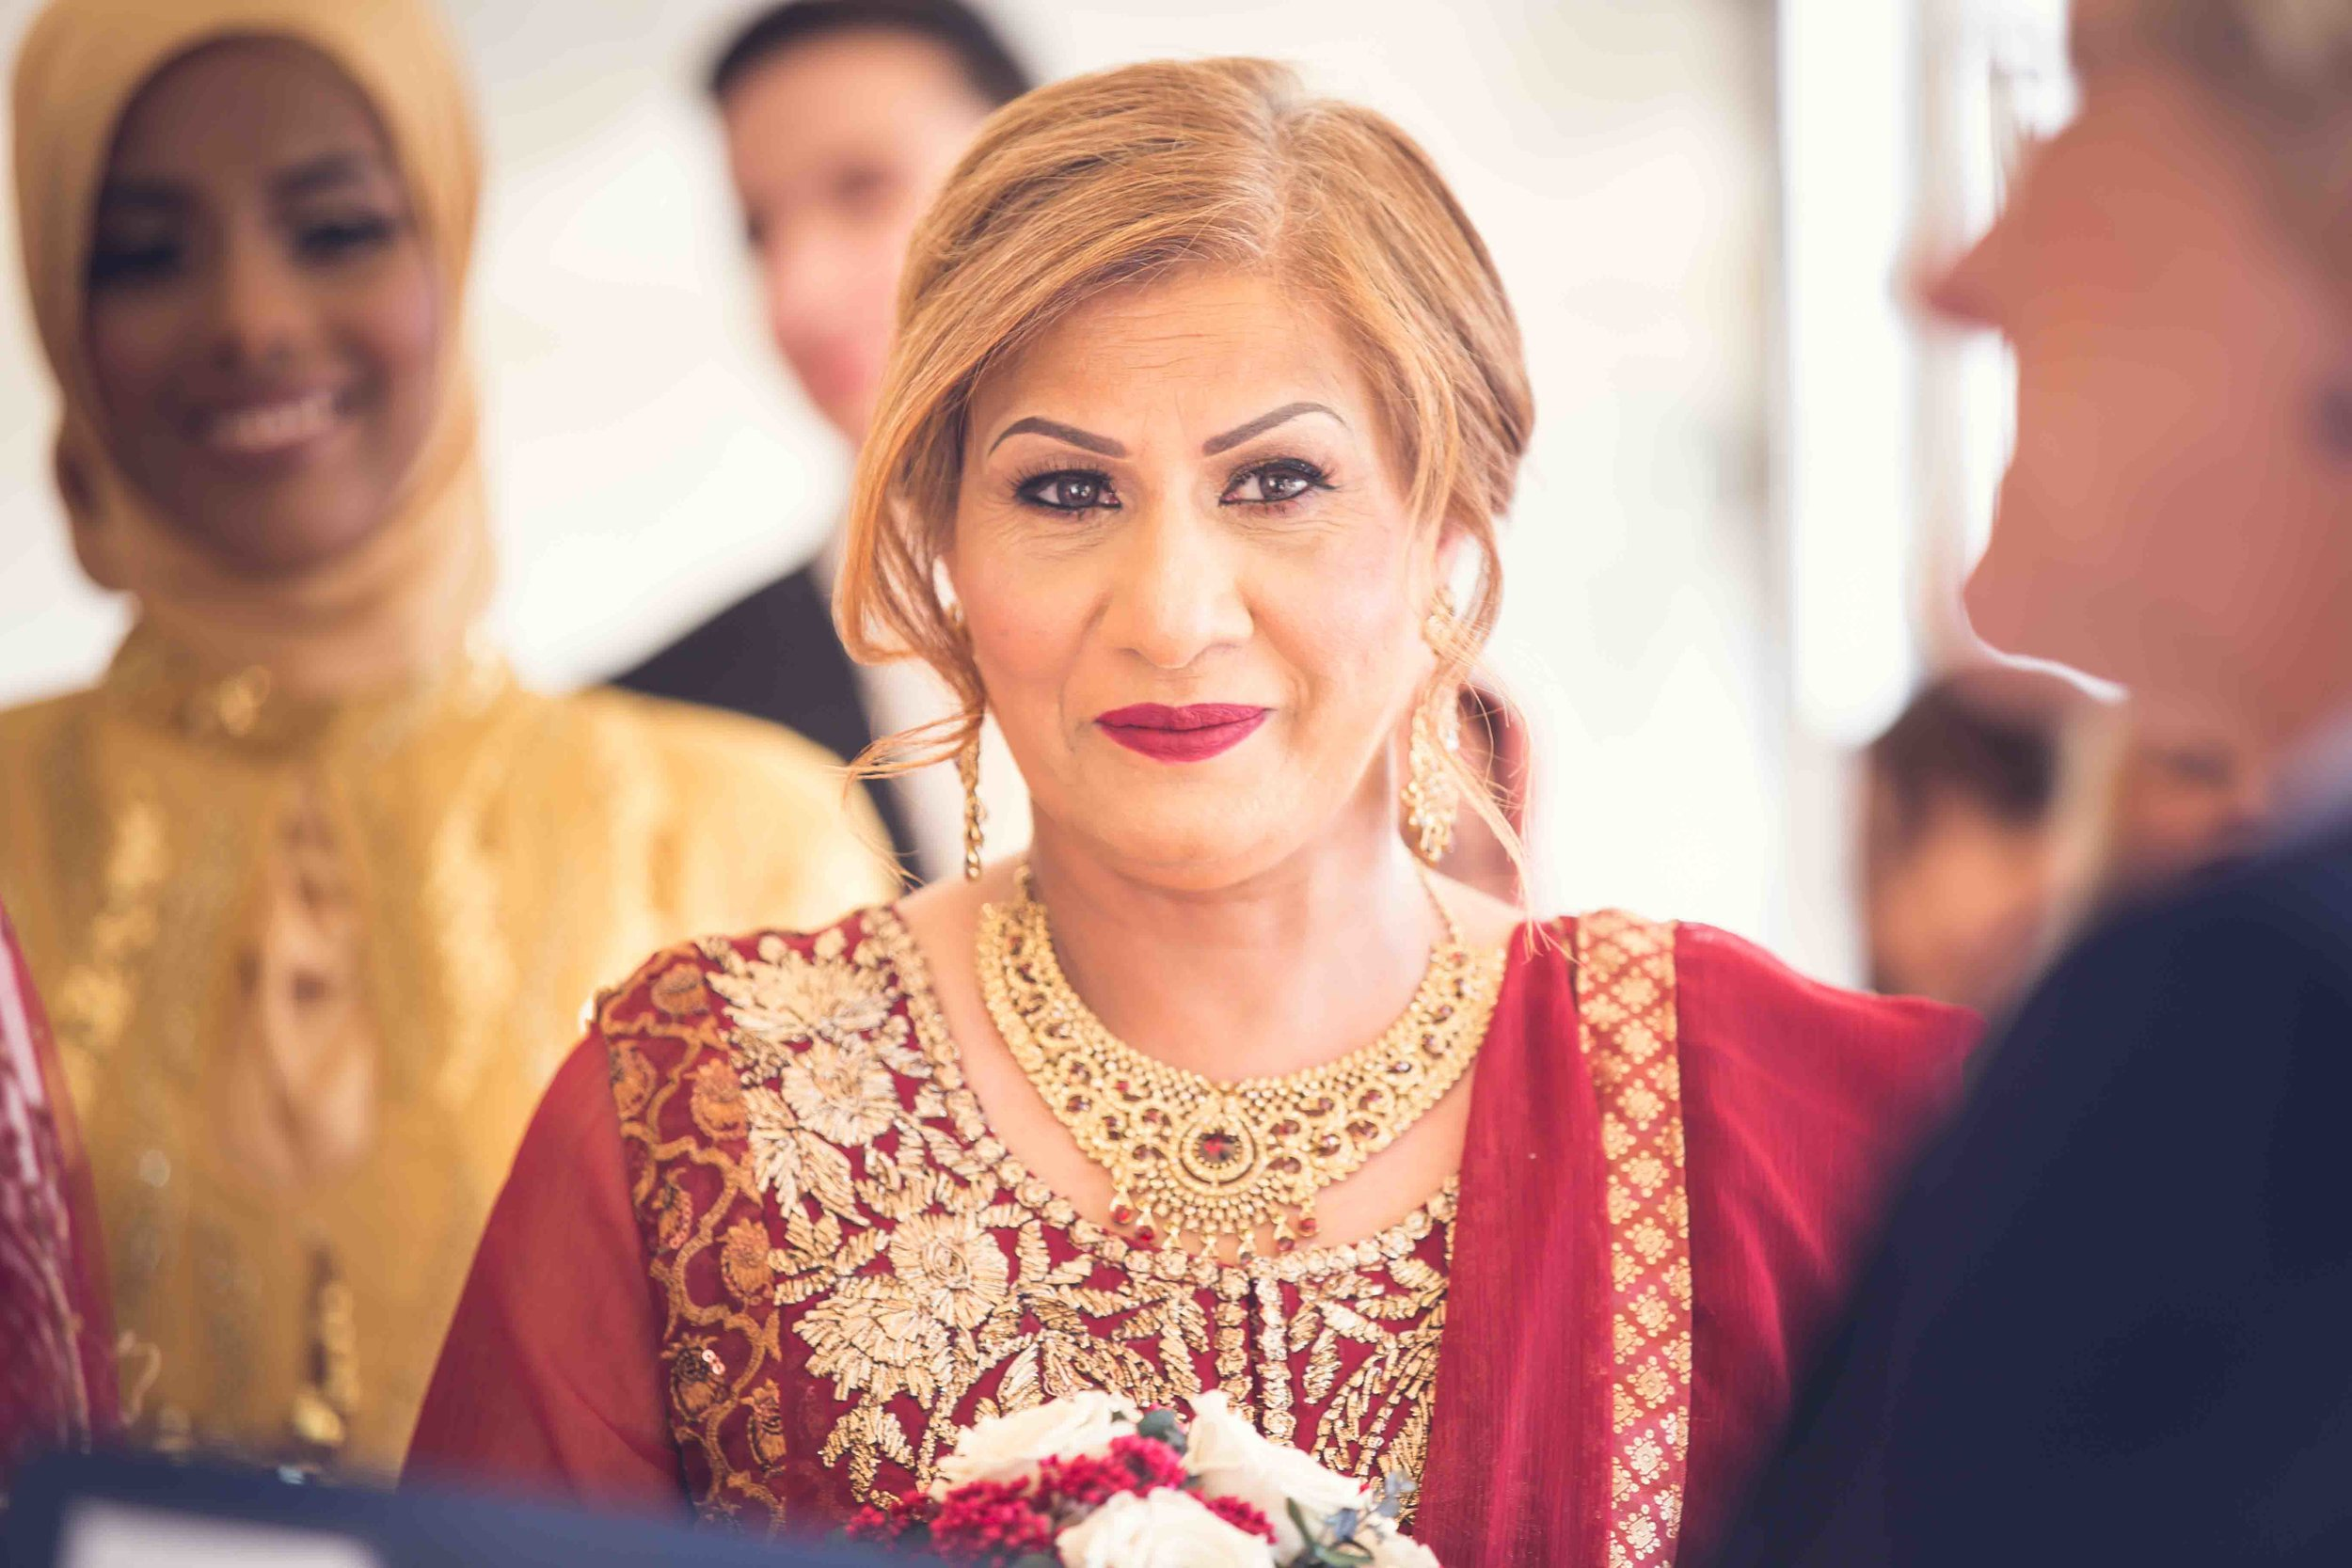 Asian Wedding Photographer Opu Sultan Photography Lyme Park Scotland Edinburgh Glasgow London Manchester Liverpool Birmingham Wedding Photos prewed shoot Azman & Saira Blog-77.jpg